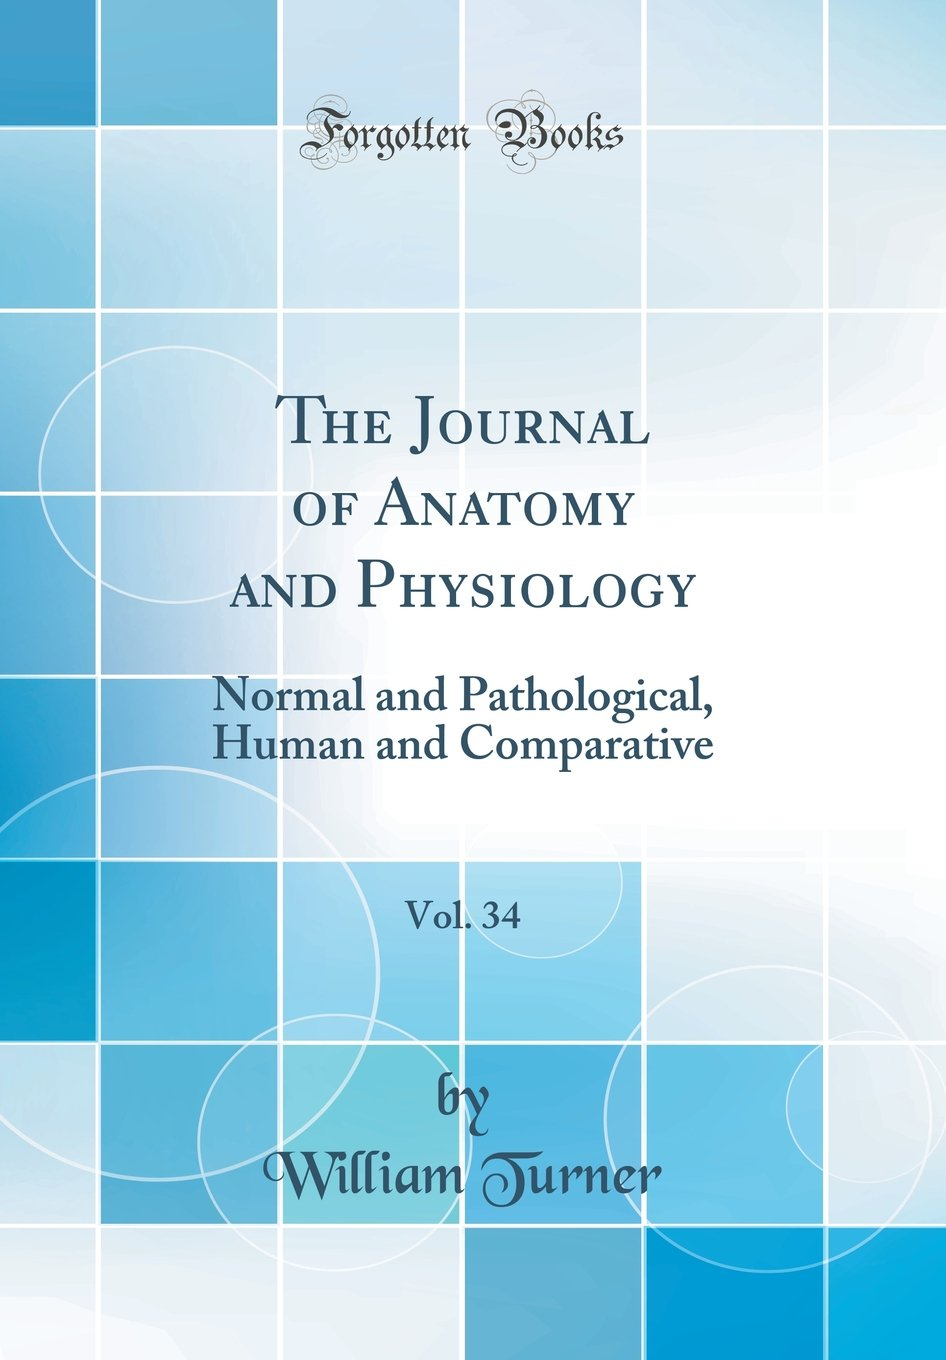 Dorable Journal Of Human Anatomy And Physiology Galería - Imágenes ...